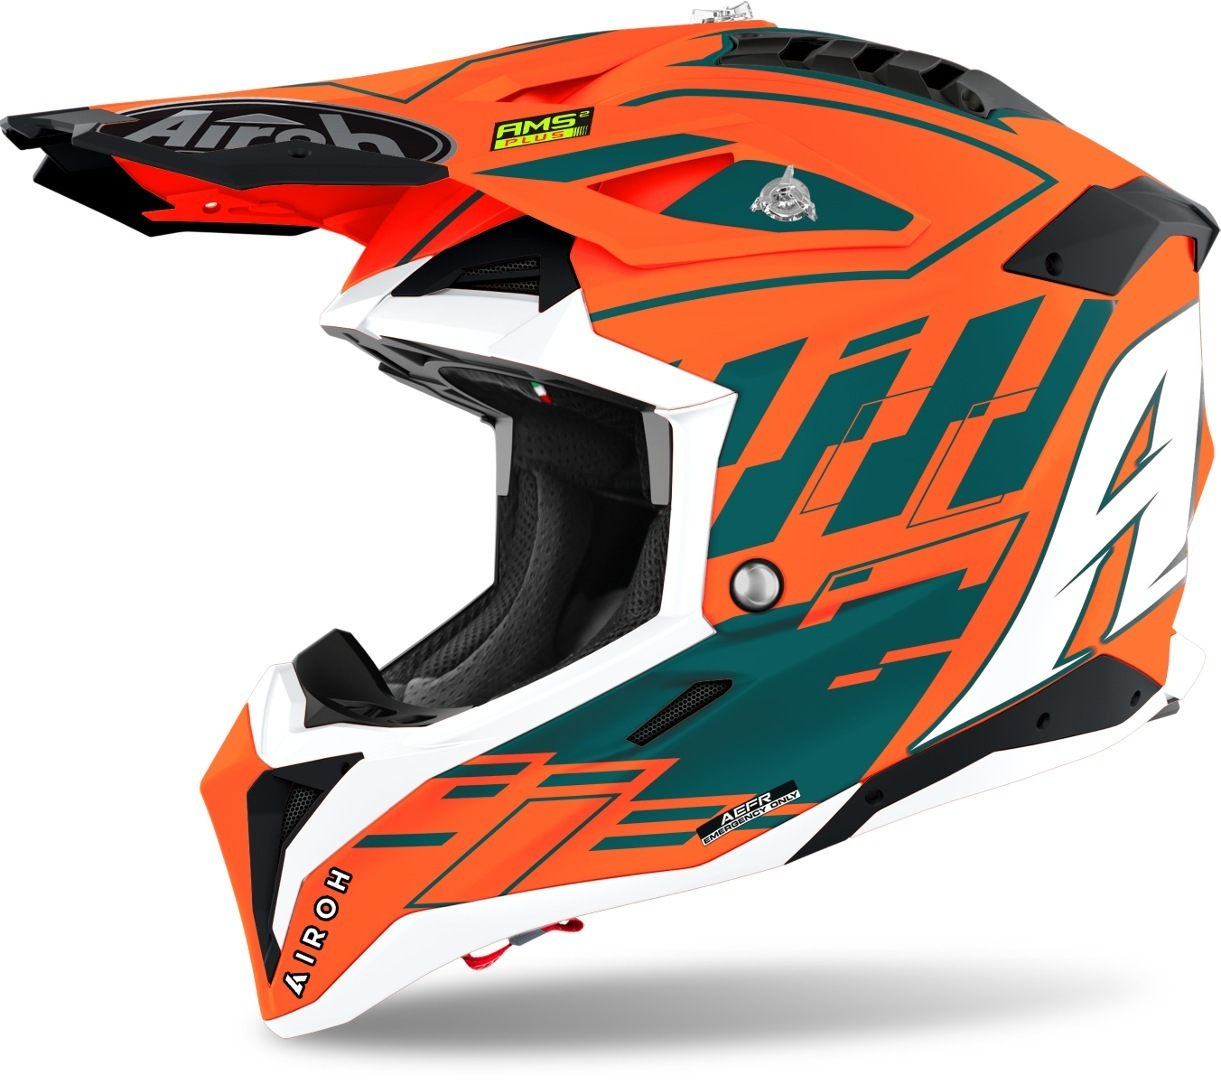 Airoh Aviator 3 Rampage Carbon Motocross Helm, orange, Größe S, orange, Größe S